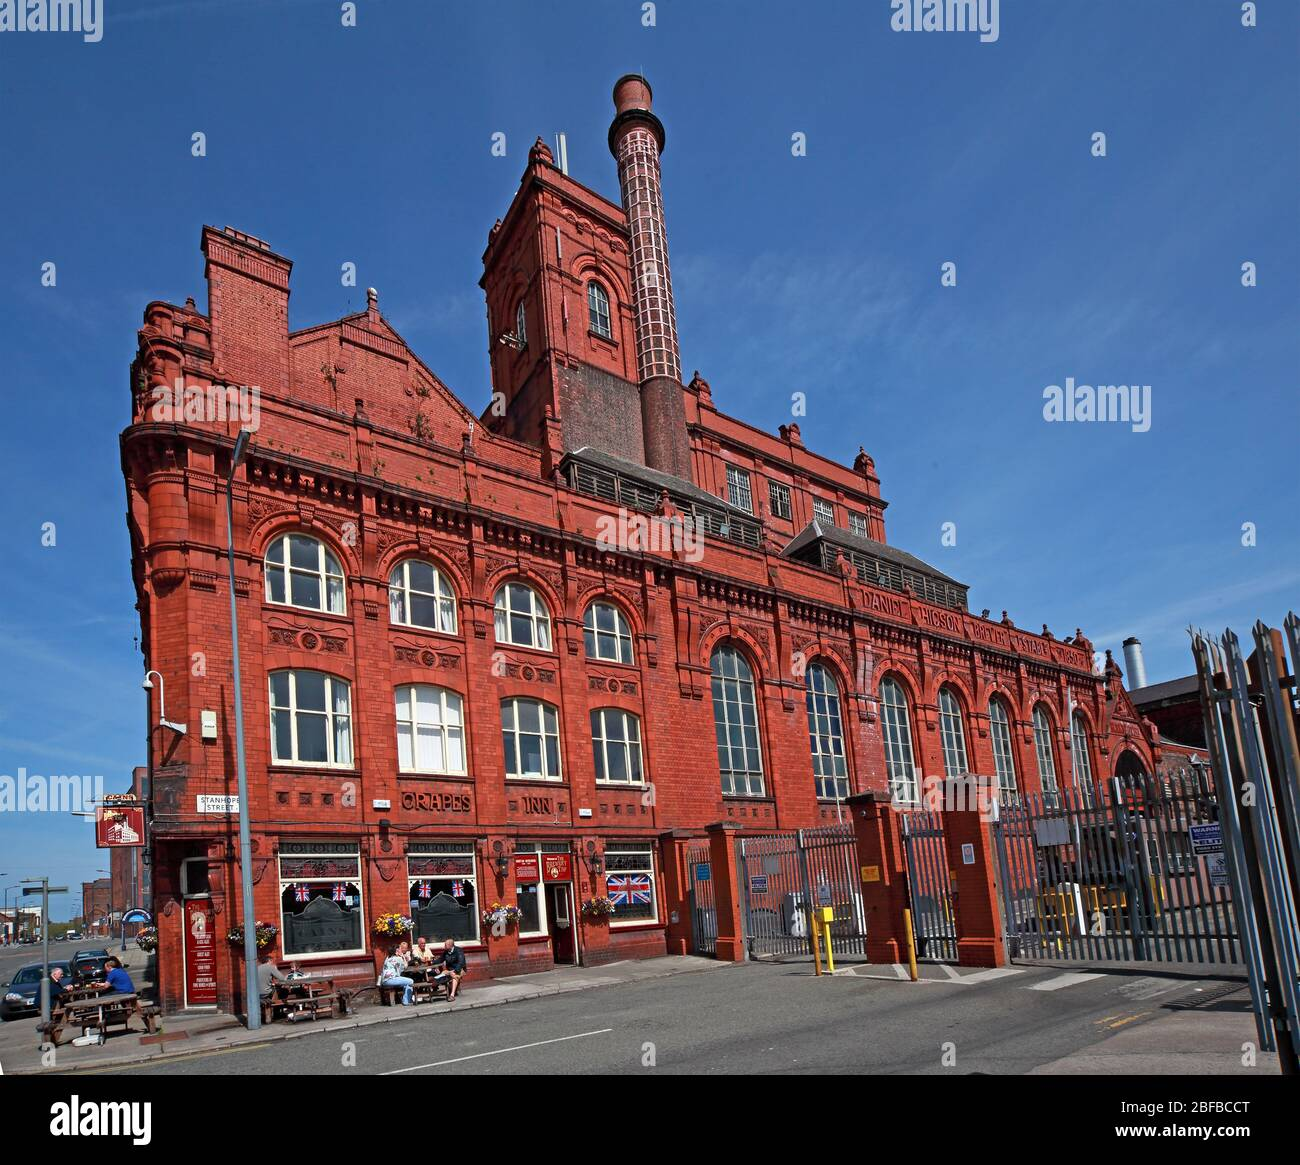 GoTonySmith,HotpixUK,@HotpixUK,Liverpool,Merseyside,North West England,England,City Centre,UK,Great Britain,Historic Cains,brewery,Cains pub,bar,Cains bitter,beer,beers,Brewery Tap,L8,Classic pub,Stanhope,street,st,Cains Brewery Village complex,Victorian,classic,historic,history,Cain,Robert cain brewery,Walker Cains,Stanhope Street Brewery,Higsons,Cains Beer Company PLC,Cains Brewery,Baltic Markets